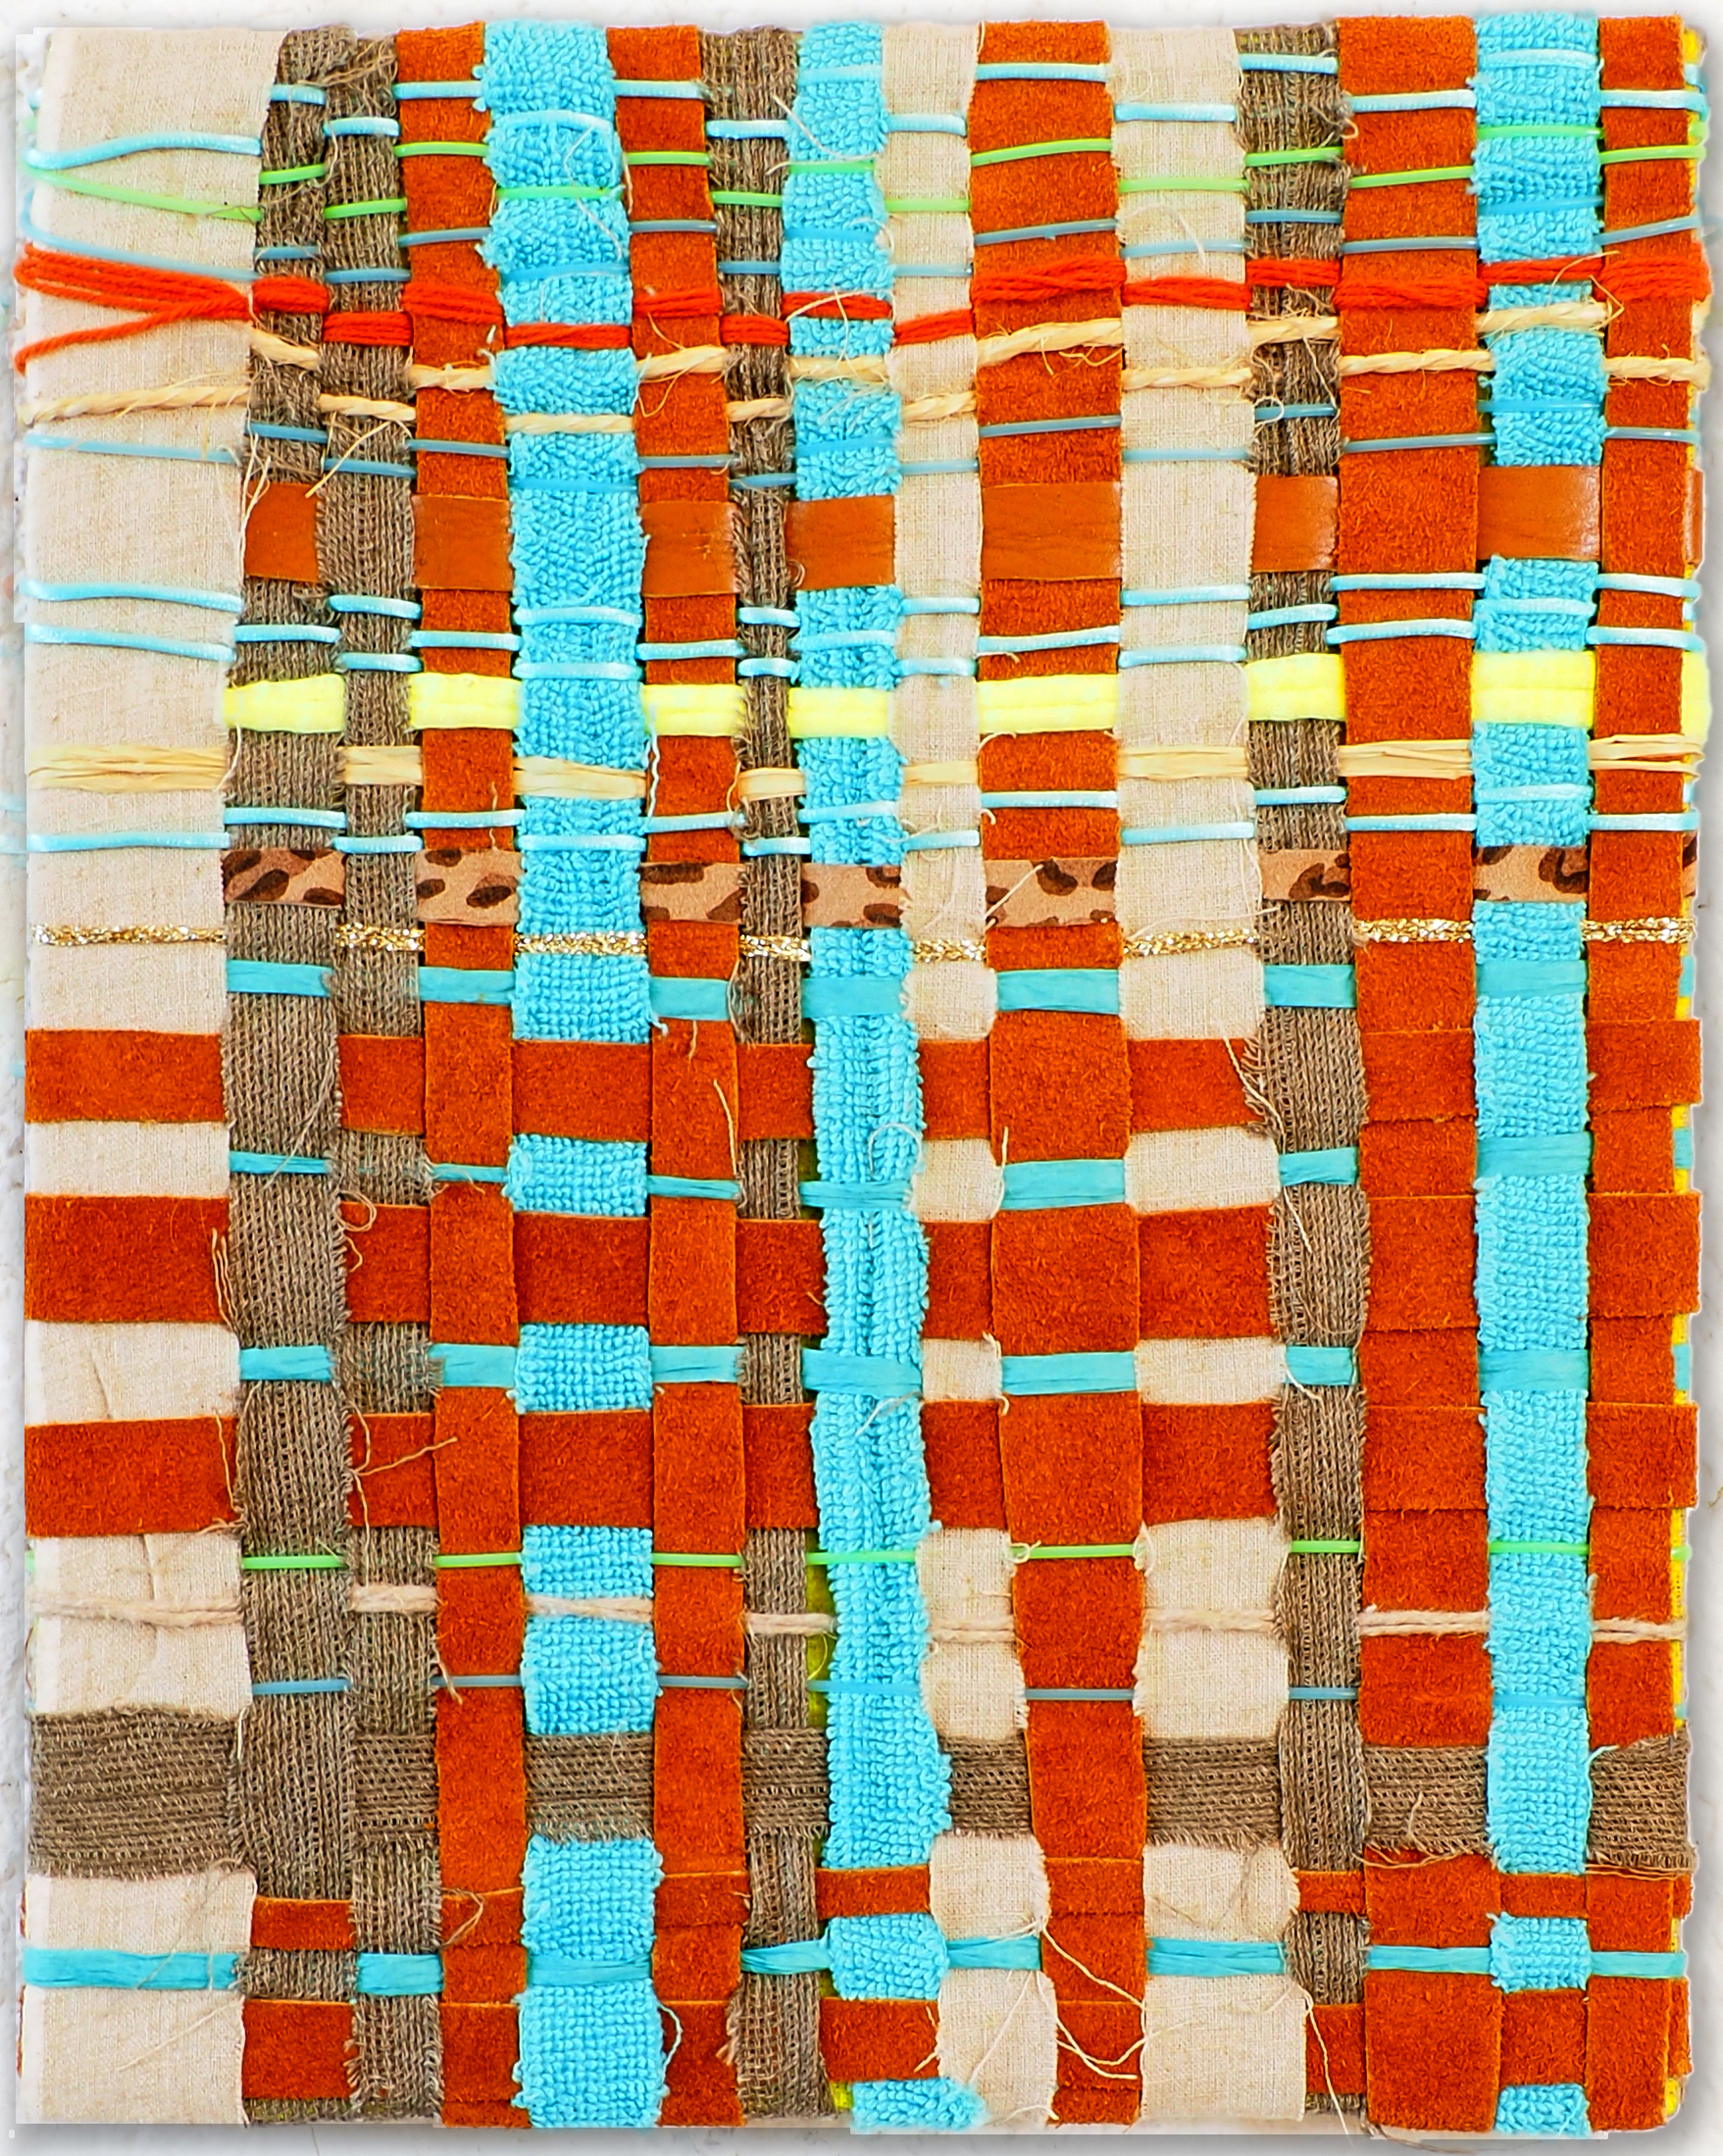 Weaving nr. 003 Material: fabric, leather, canvas, strings canvas. Year: 2016